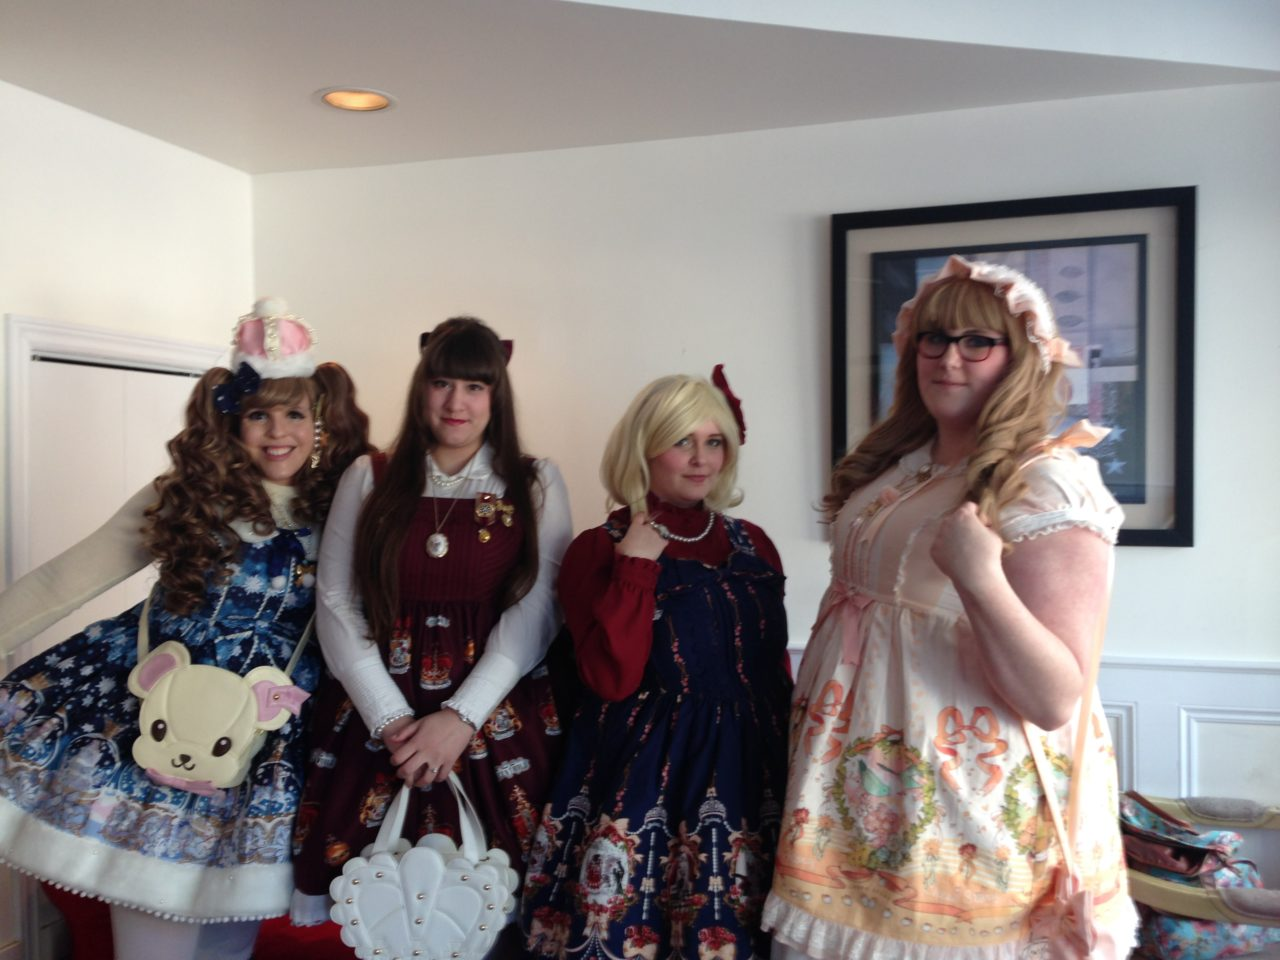 Petticoats, Bloomers, Stockings, Oh My!: On Lolita Fashion & Subculture